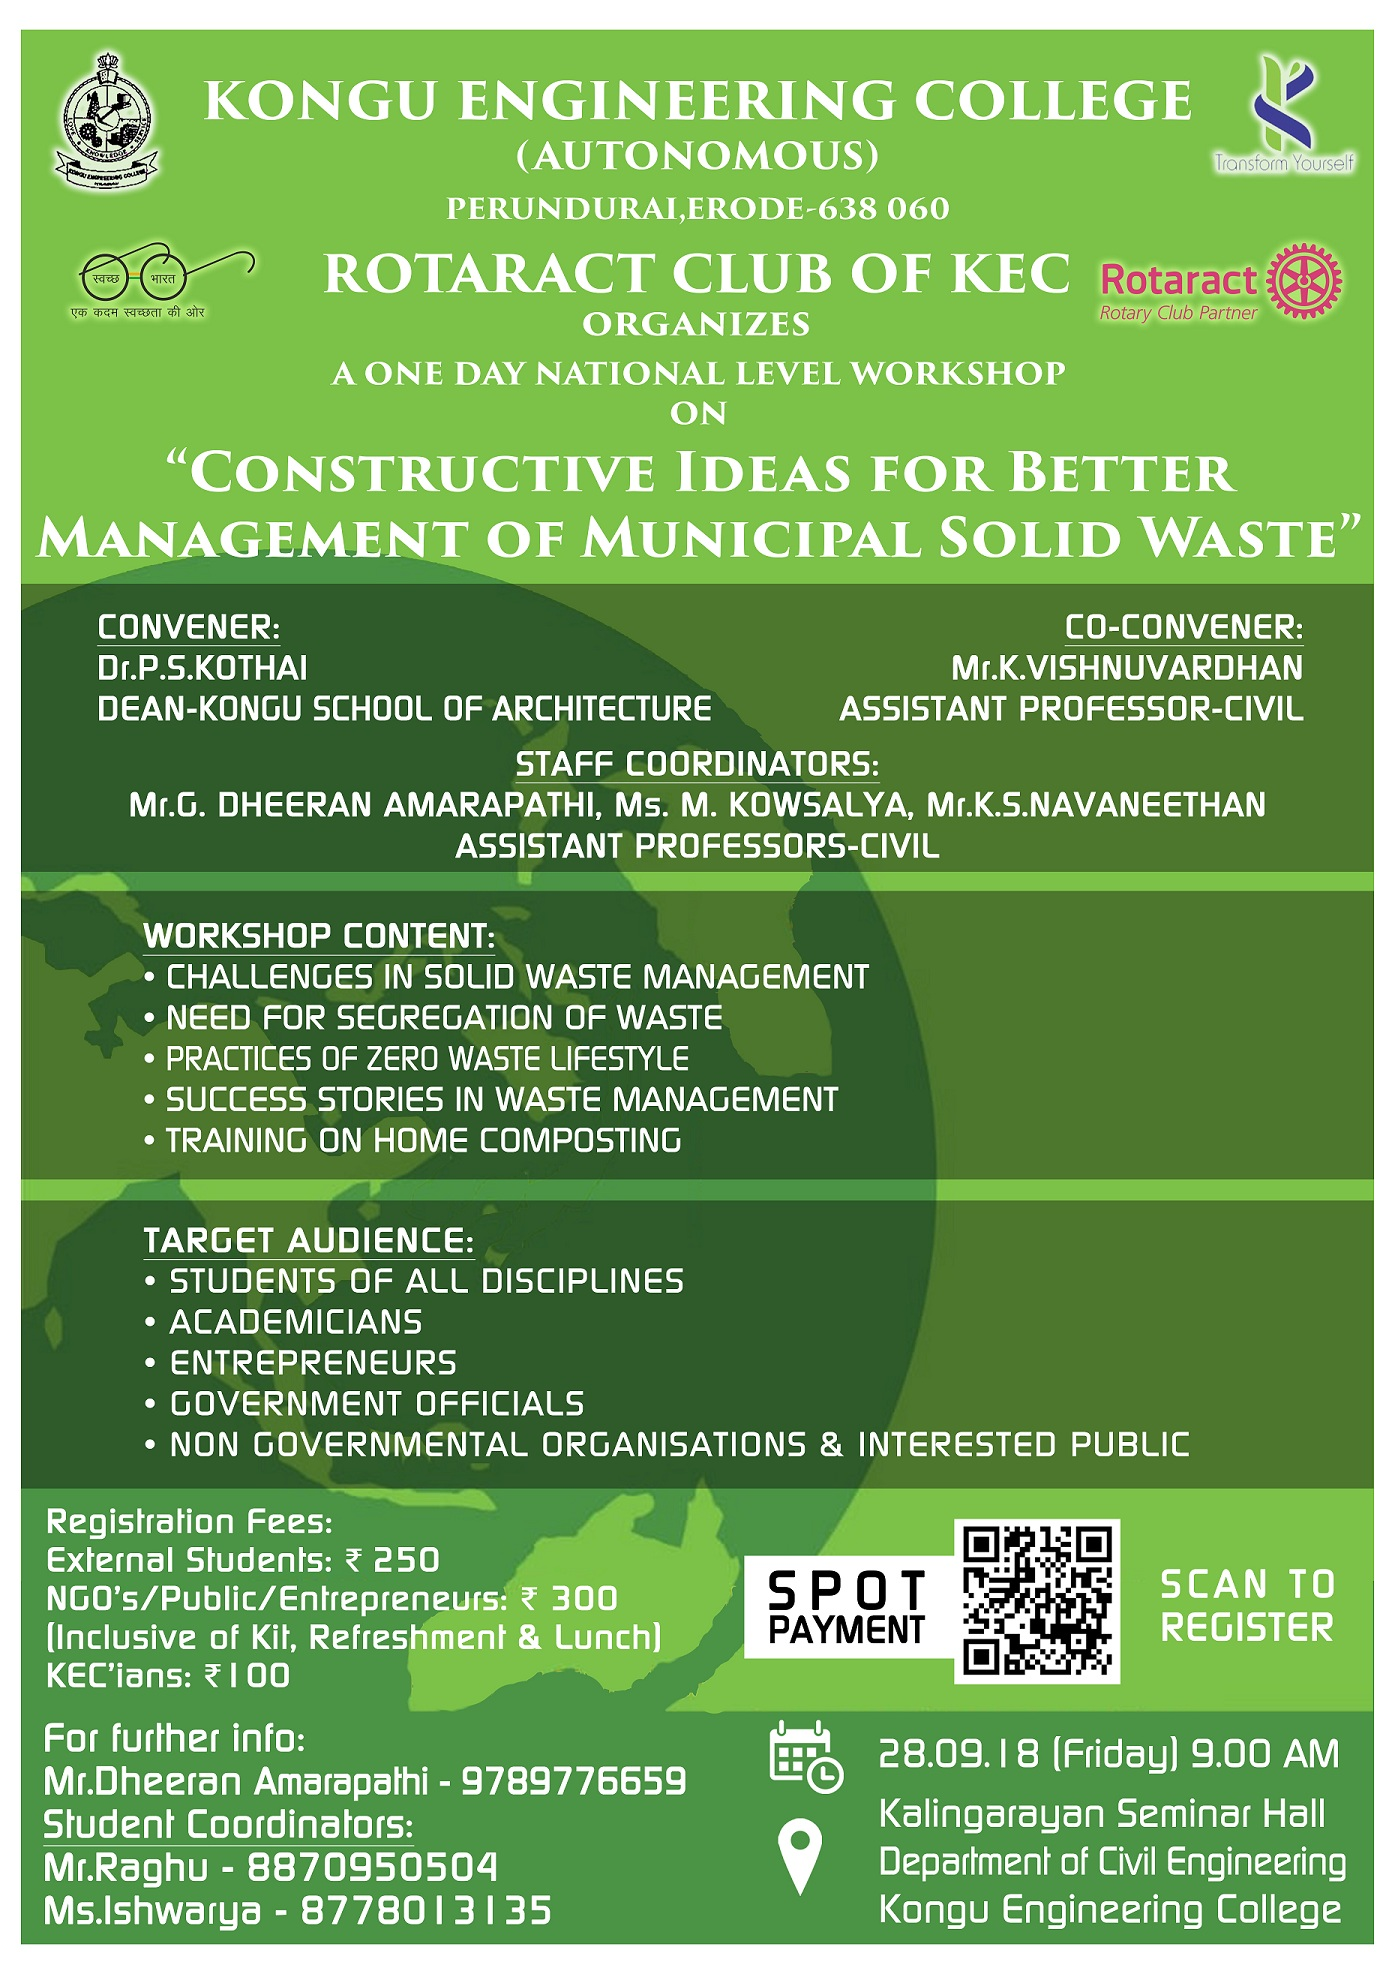 One Day National Level Workshop on Constructive Ideas for Better Management of Municipal Solid Waste 2018